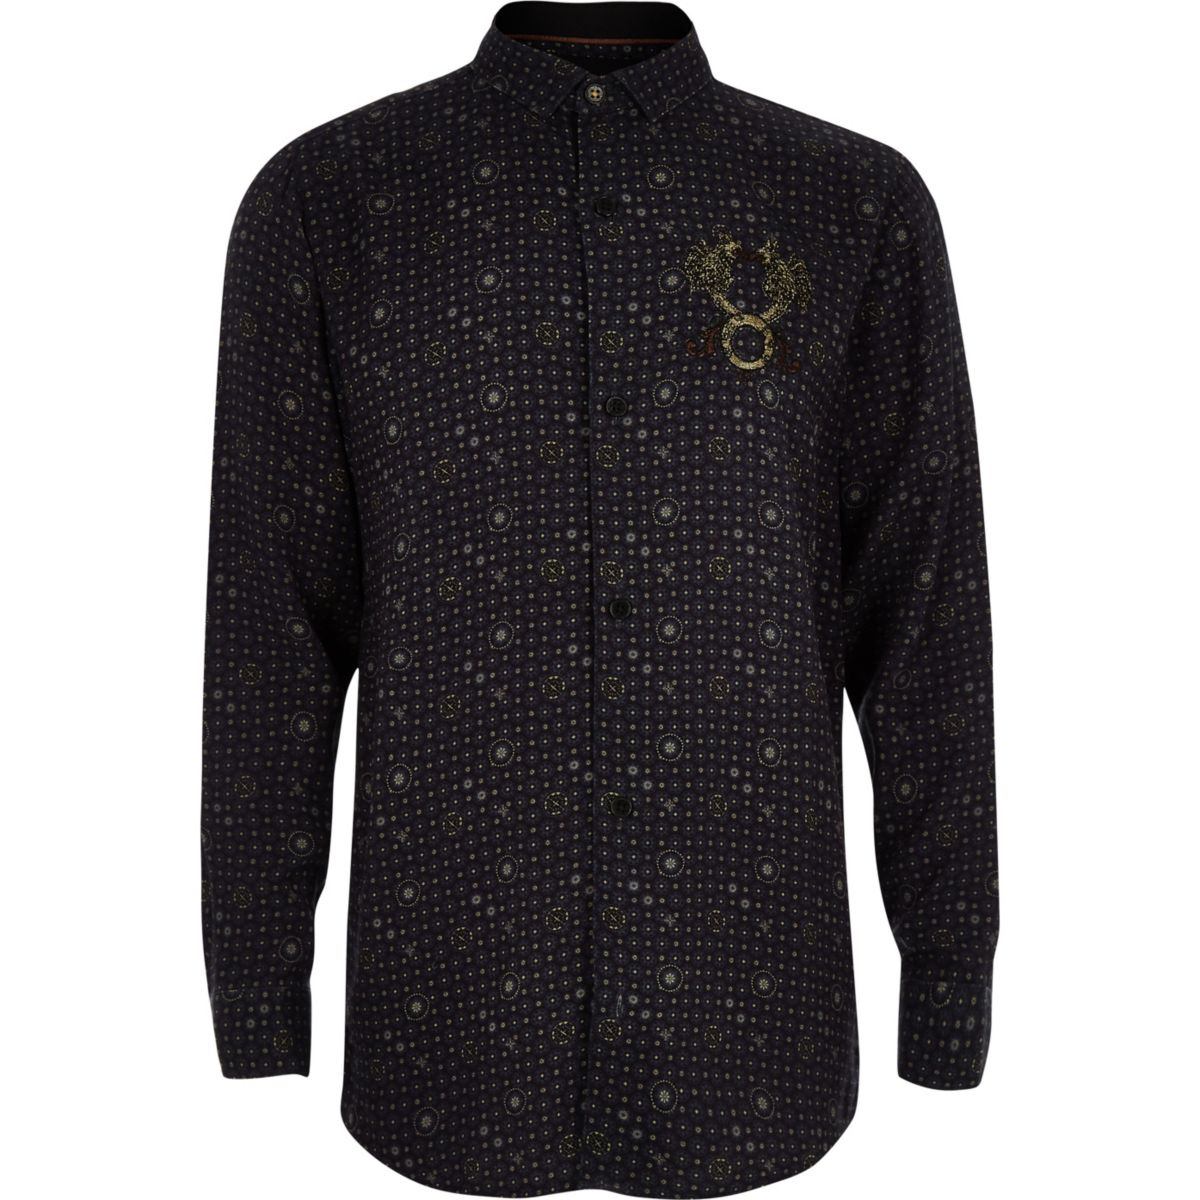 RI 30 boys navy tile print shirt